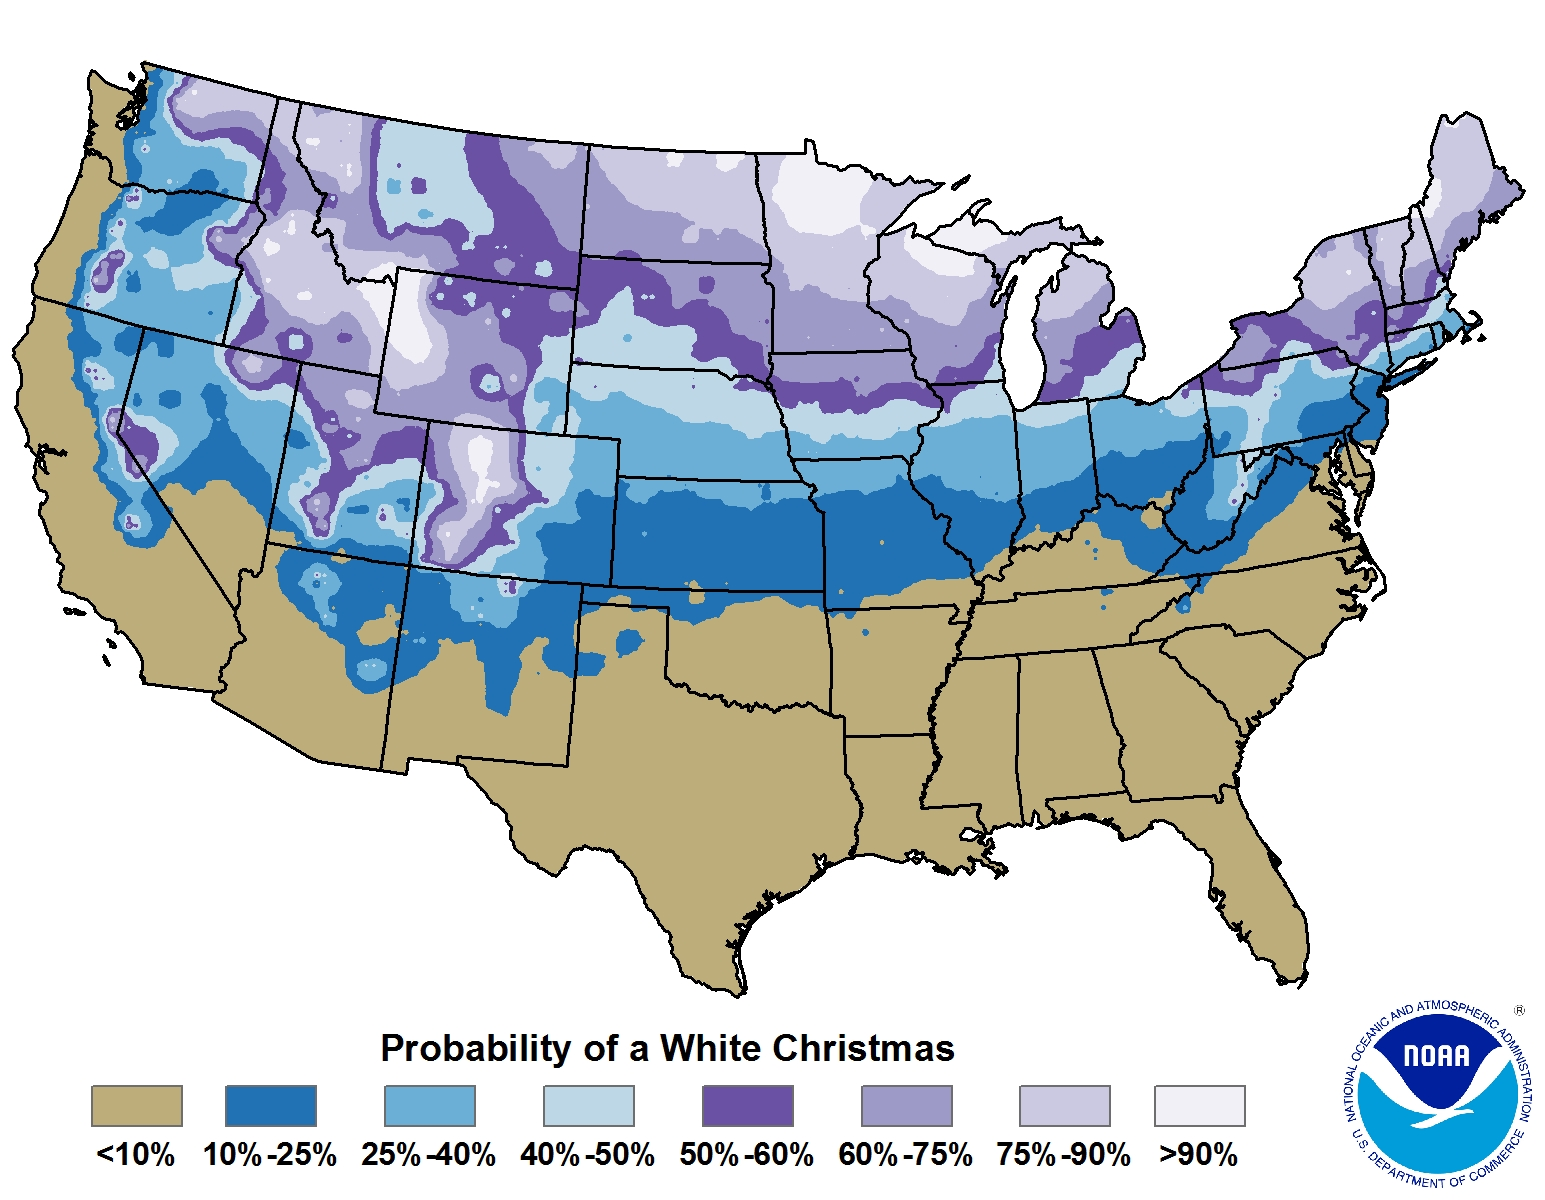 Probabilities of a White Christmas